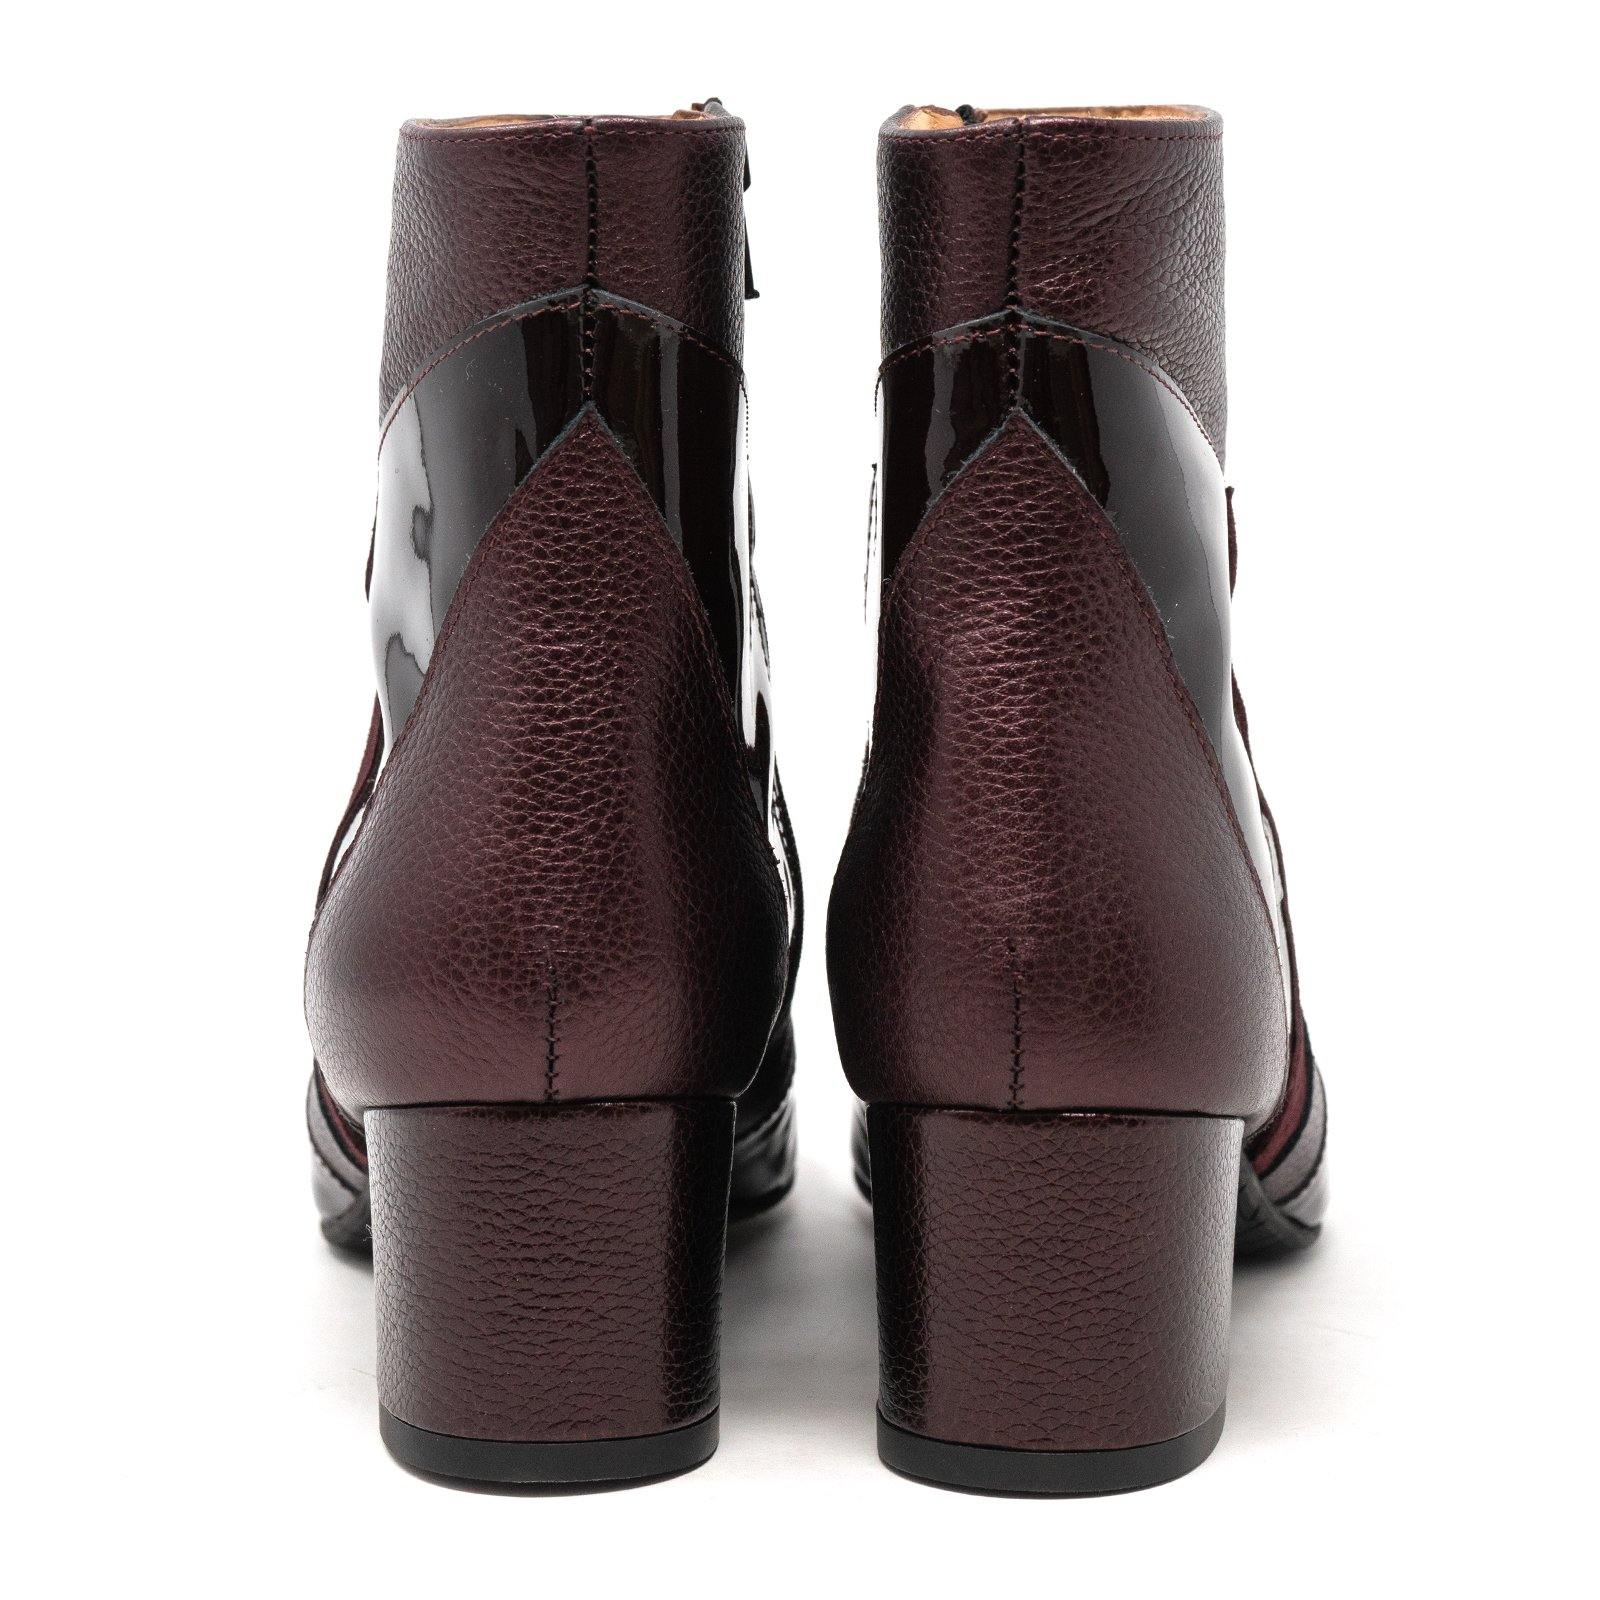 Women Dressy Leather Booties in Metallic Burgundy